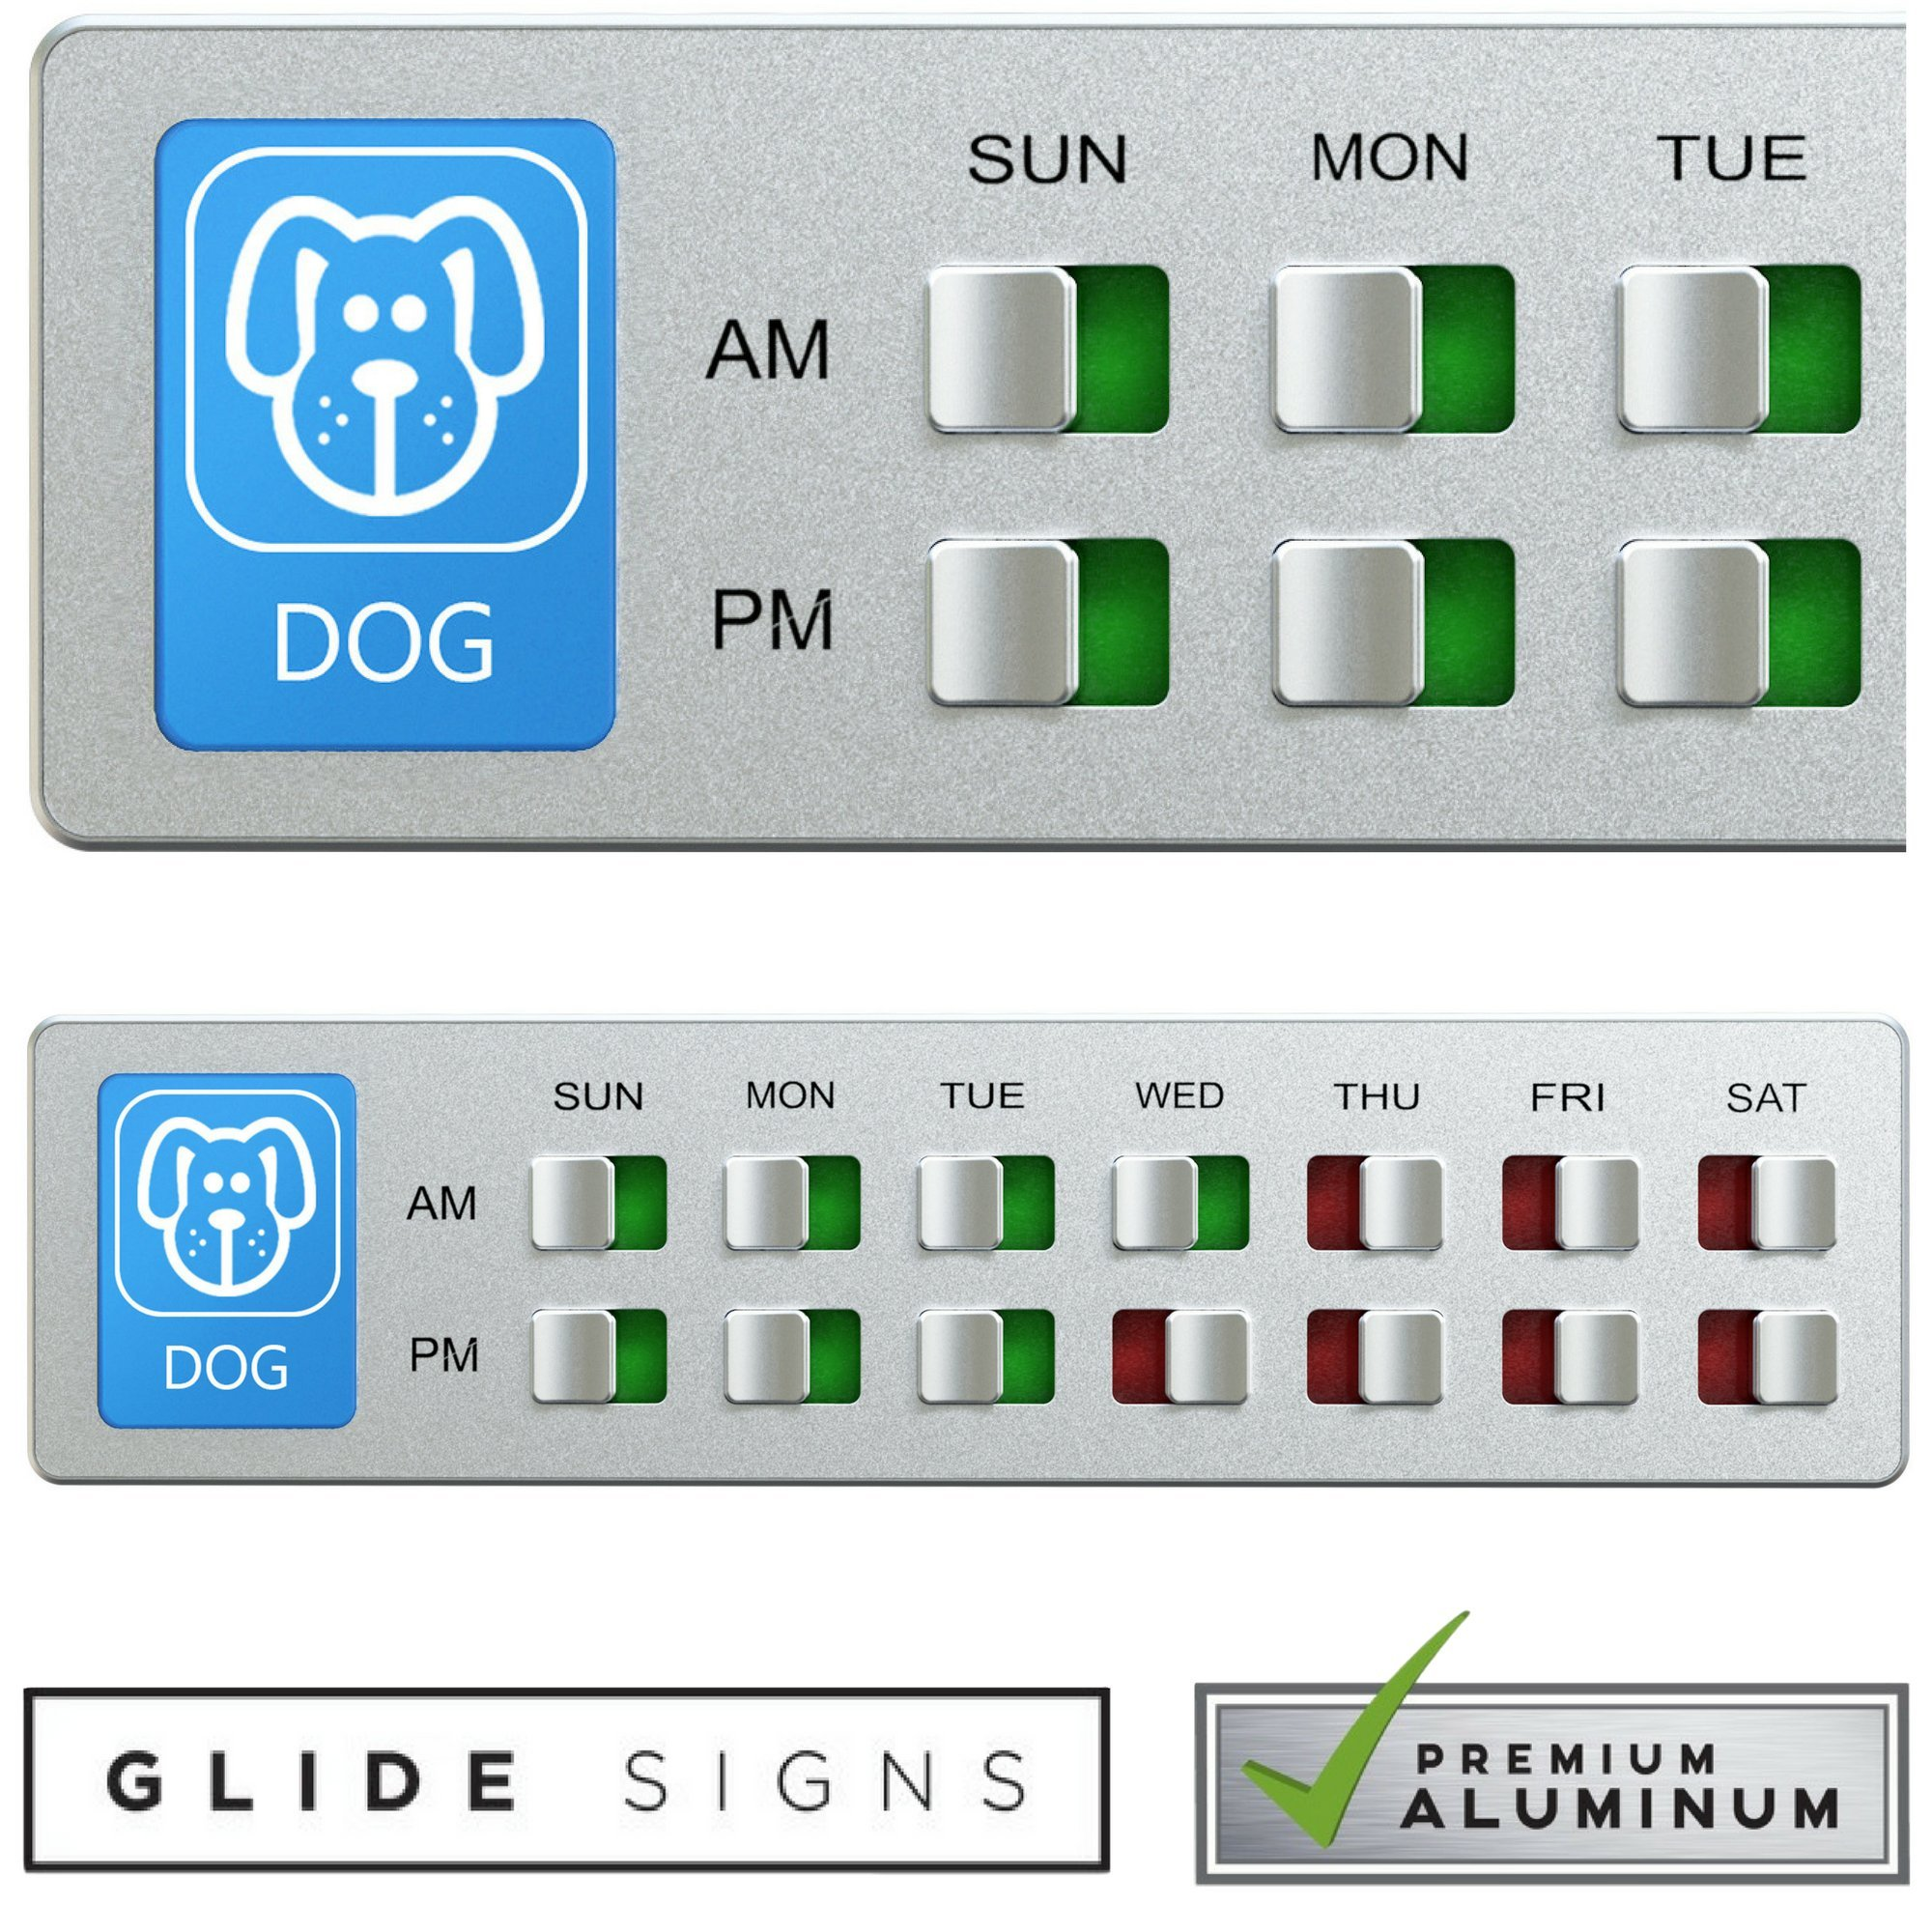 Glide Signs Dog Food Organizer – Pet Feeding Reminder - Am Pm Daily Indicator Sign - Fed or Feed the Puppy Supplies - Fridge Magnets and Double Sided Tape - Care for your Pets with